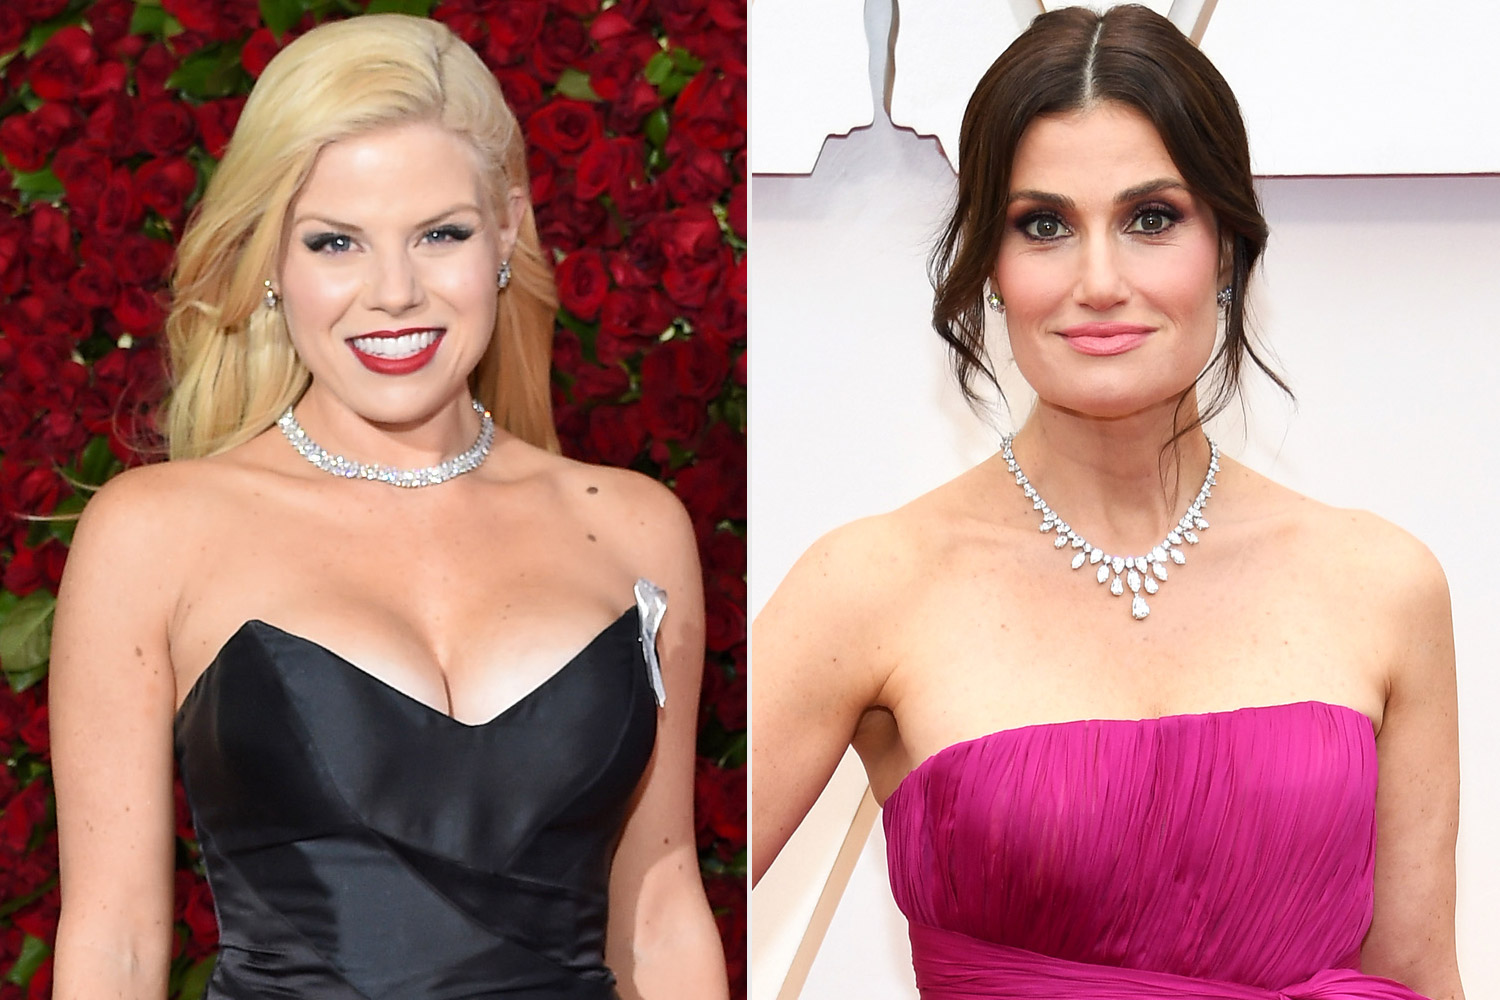 Megan Hilty and Idina Menzel